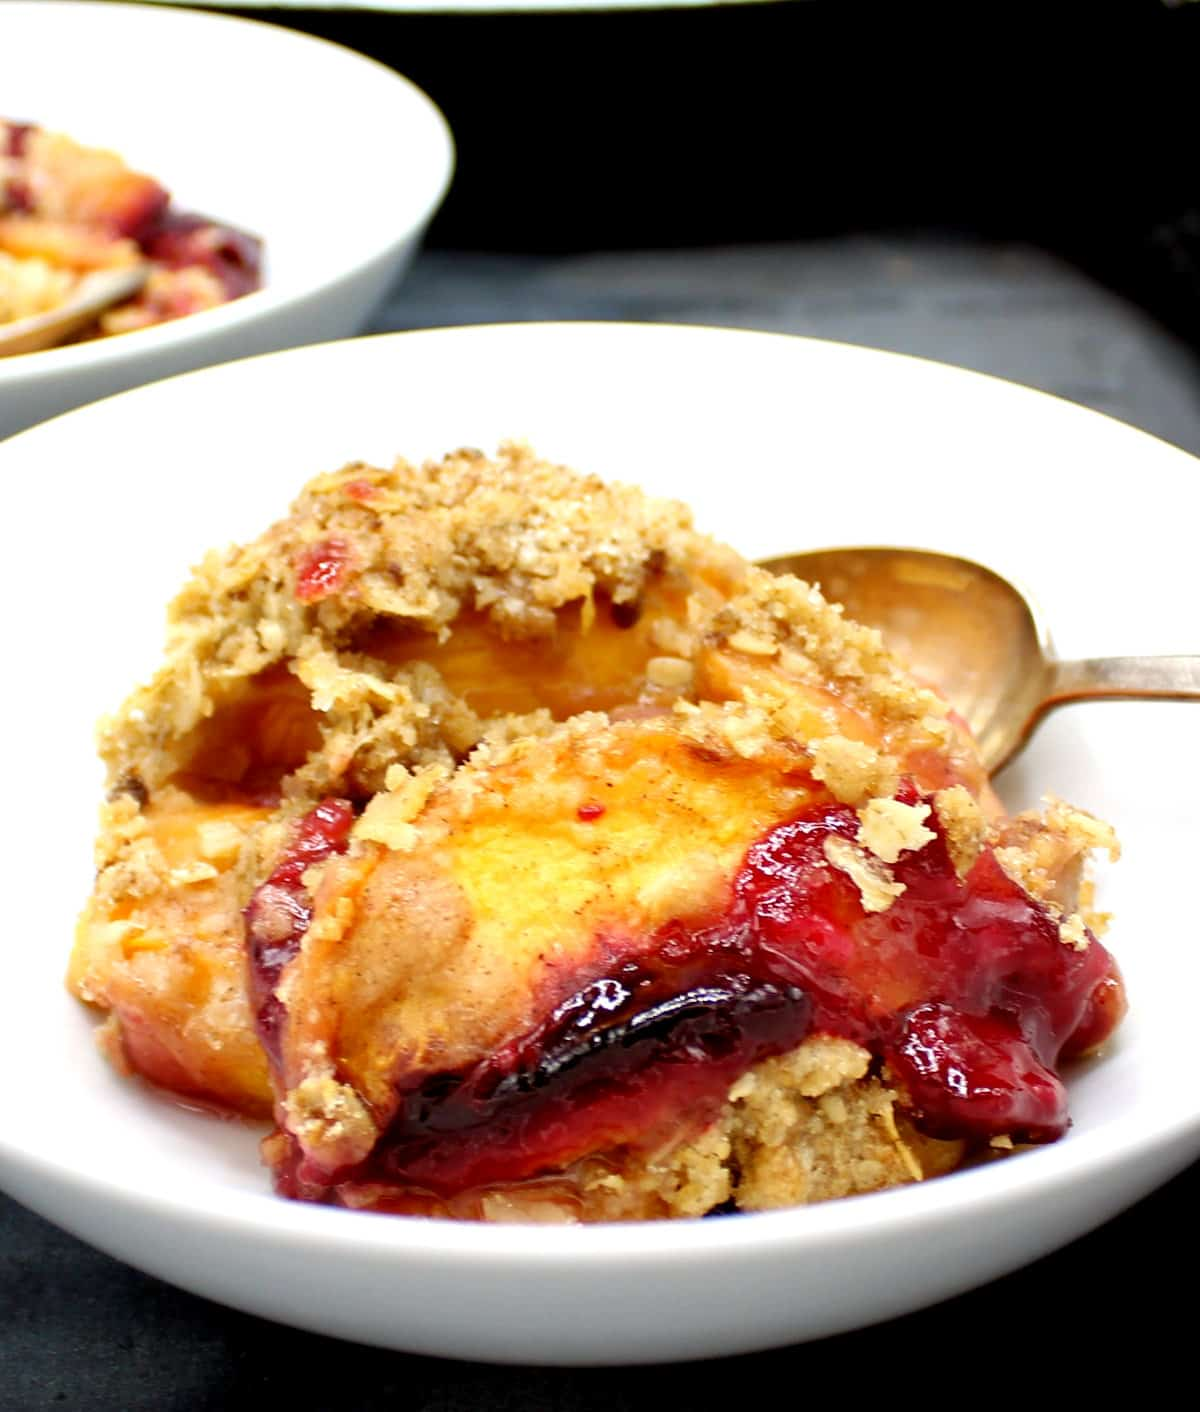 Closeup of vegan plum and peach crisp in a bowl with a spoon.